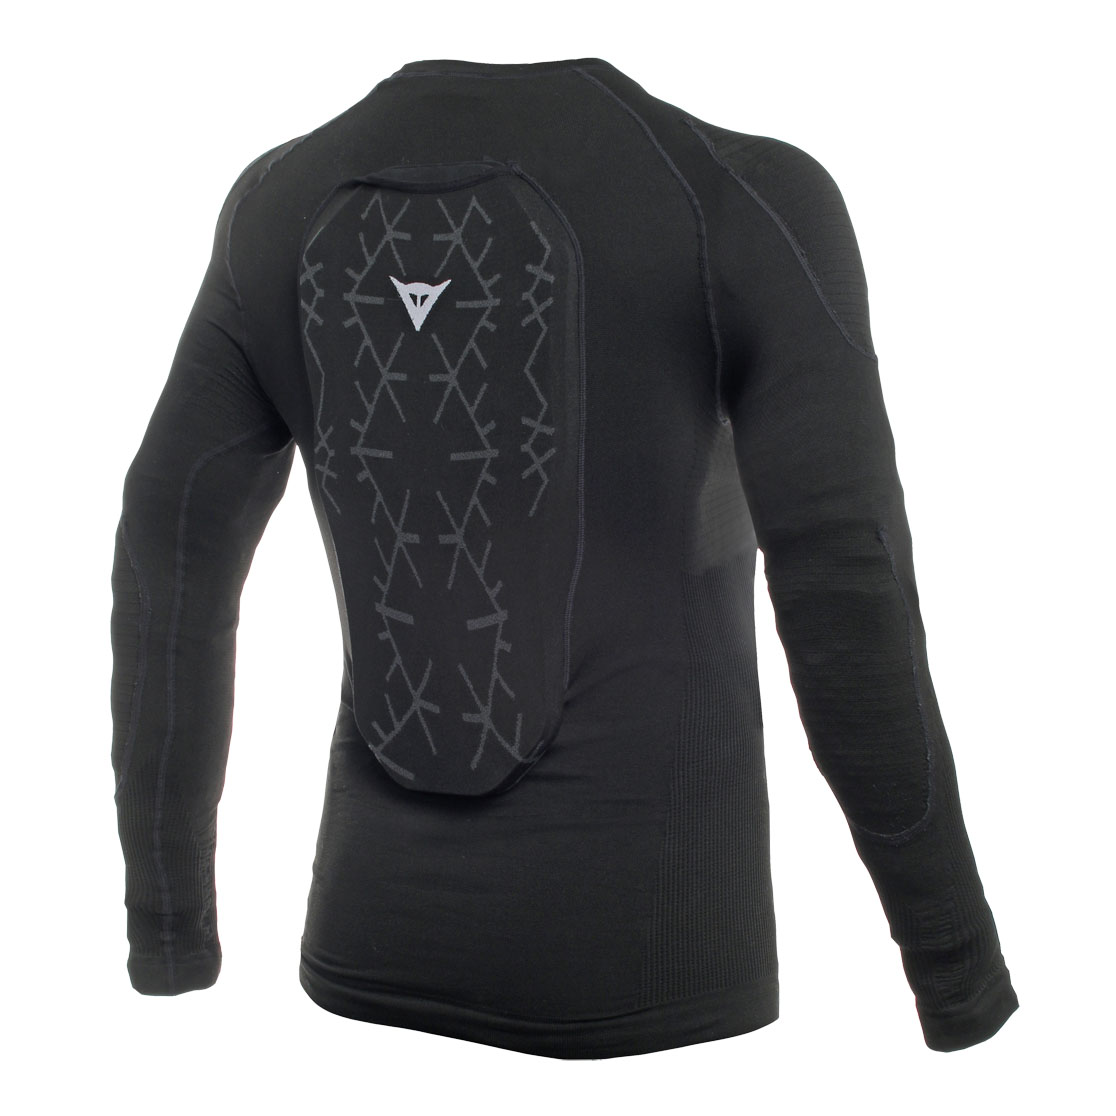 Dainese: Trailknit Back Protector Shirt 17/18